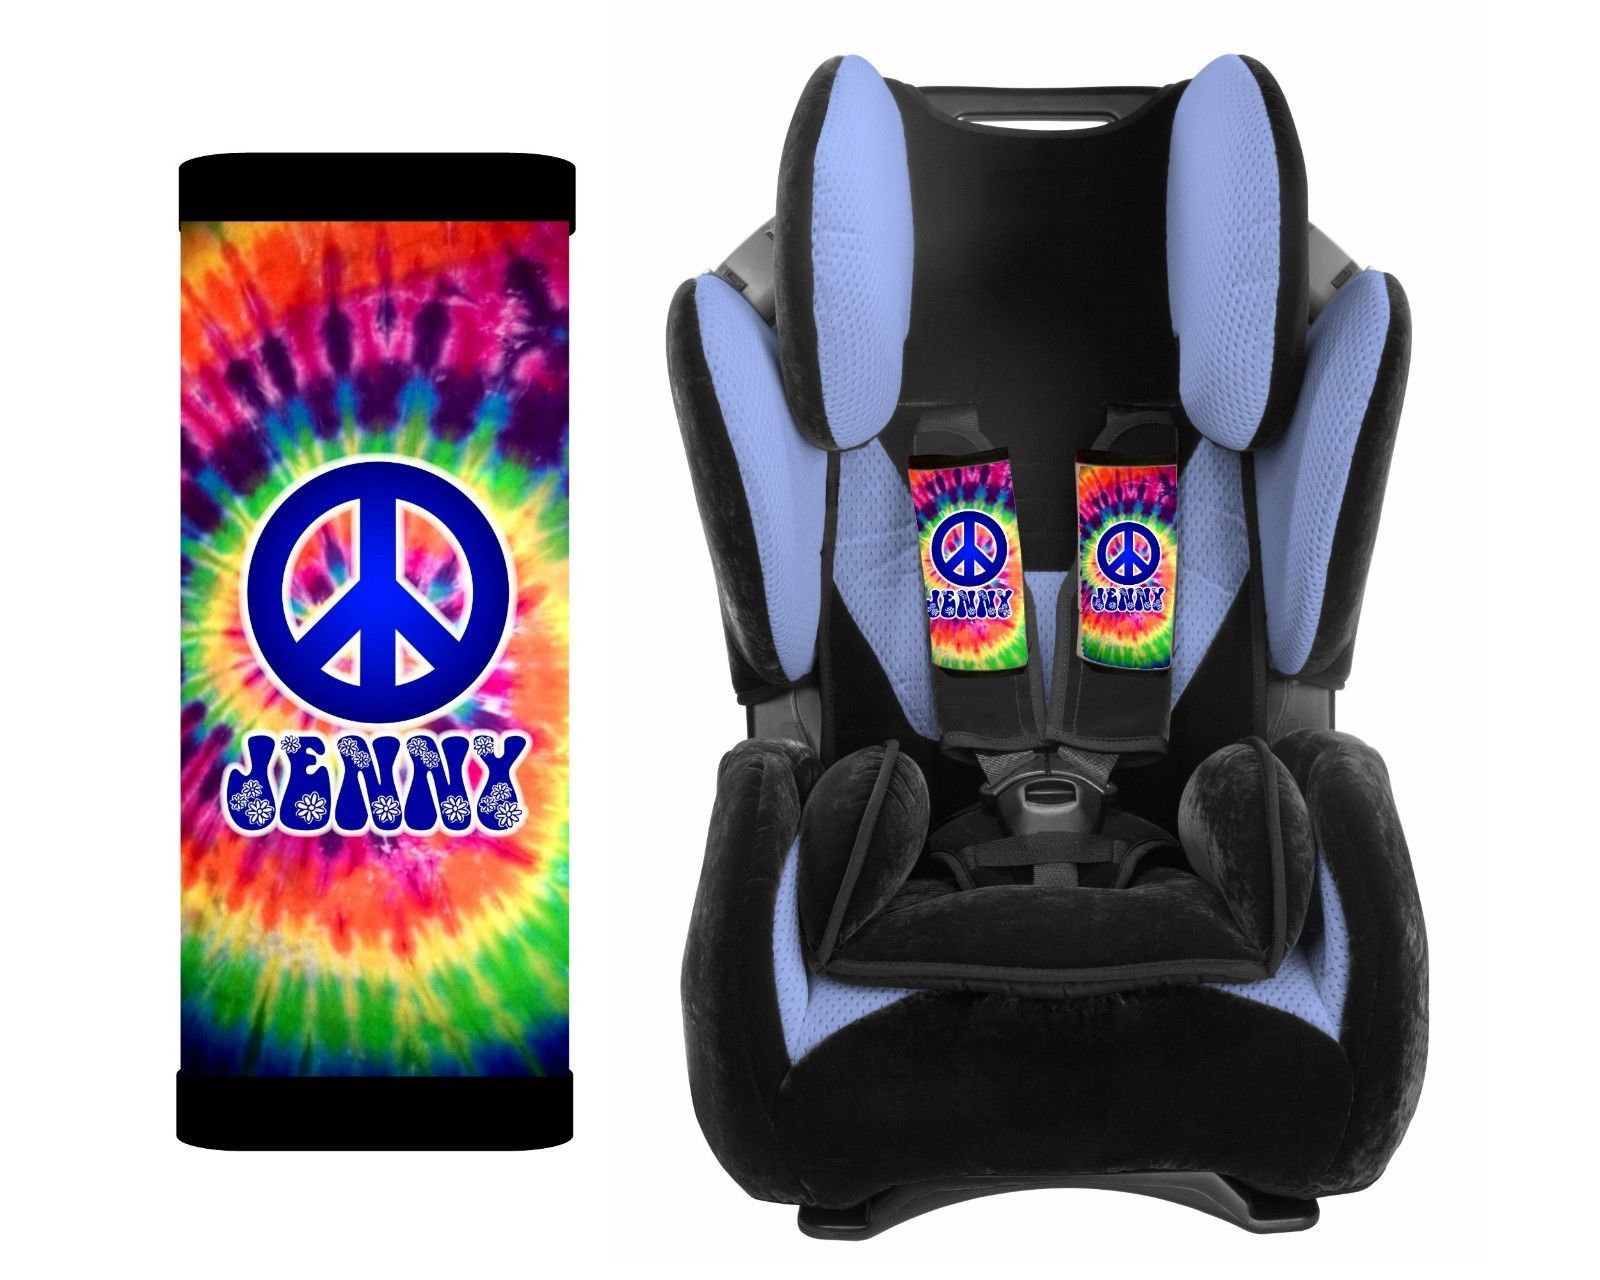 PERSONALIZED BABY TODDLER CAR SEAT STRAP COVERS TIE DYE HIPPIE PEACE SIGN